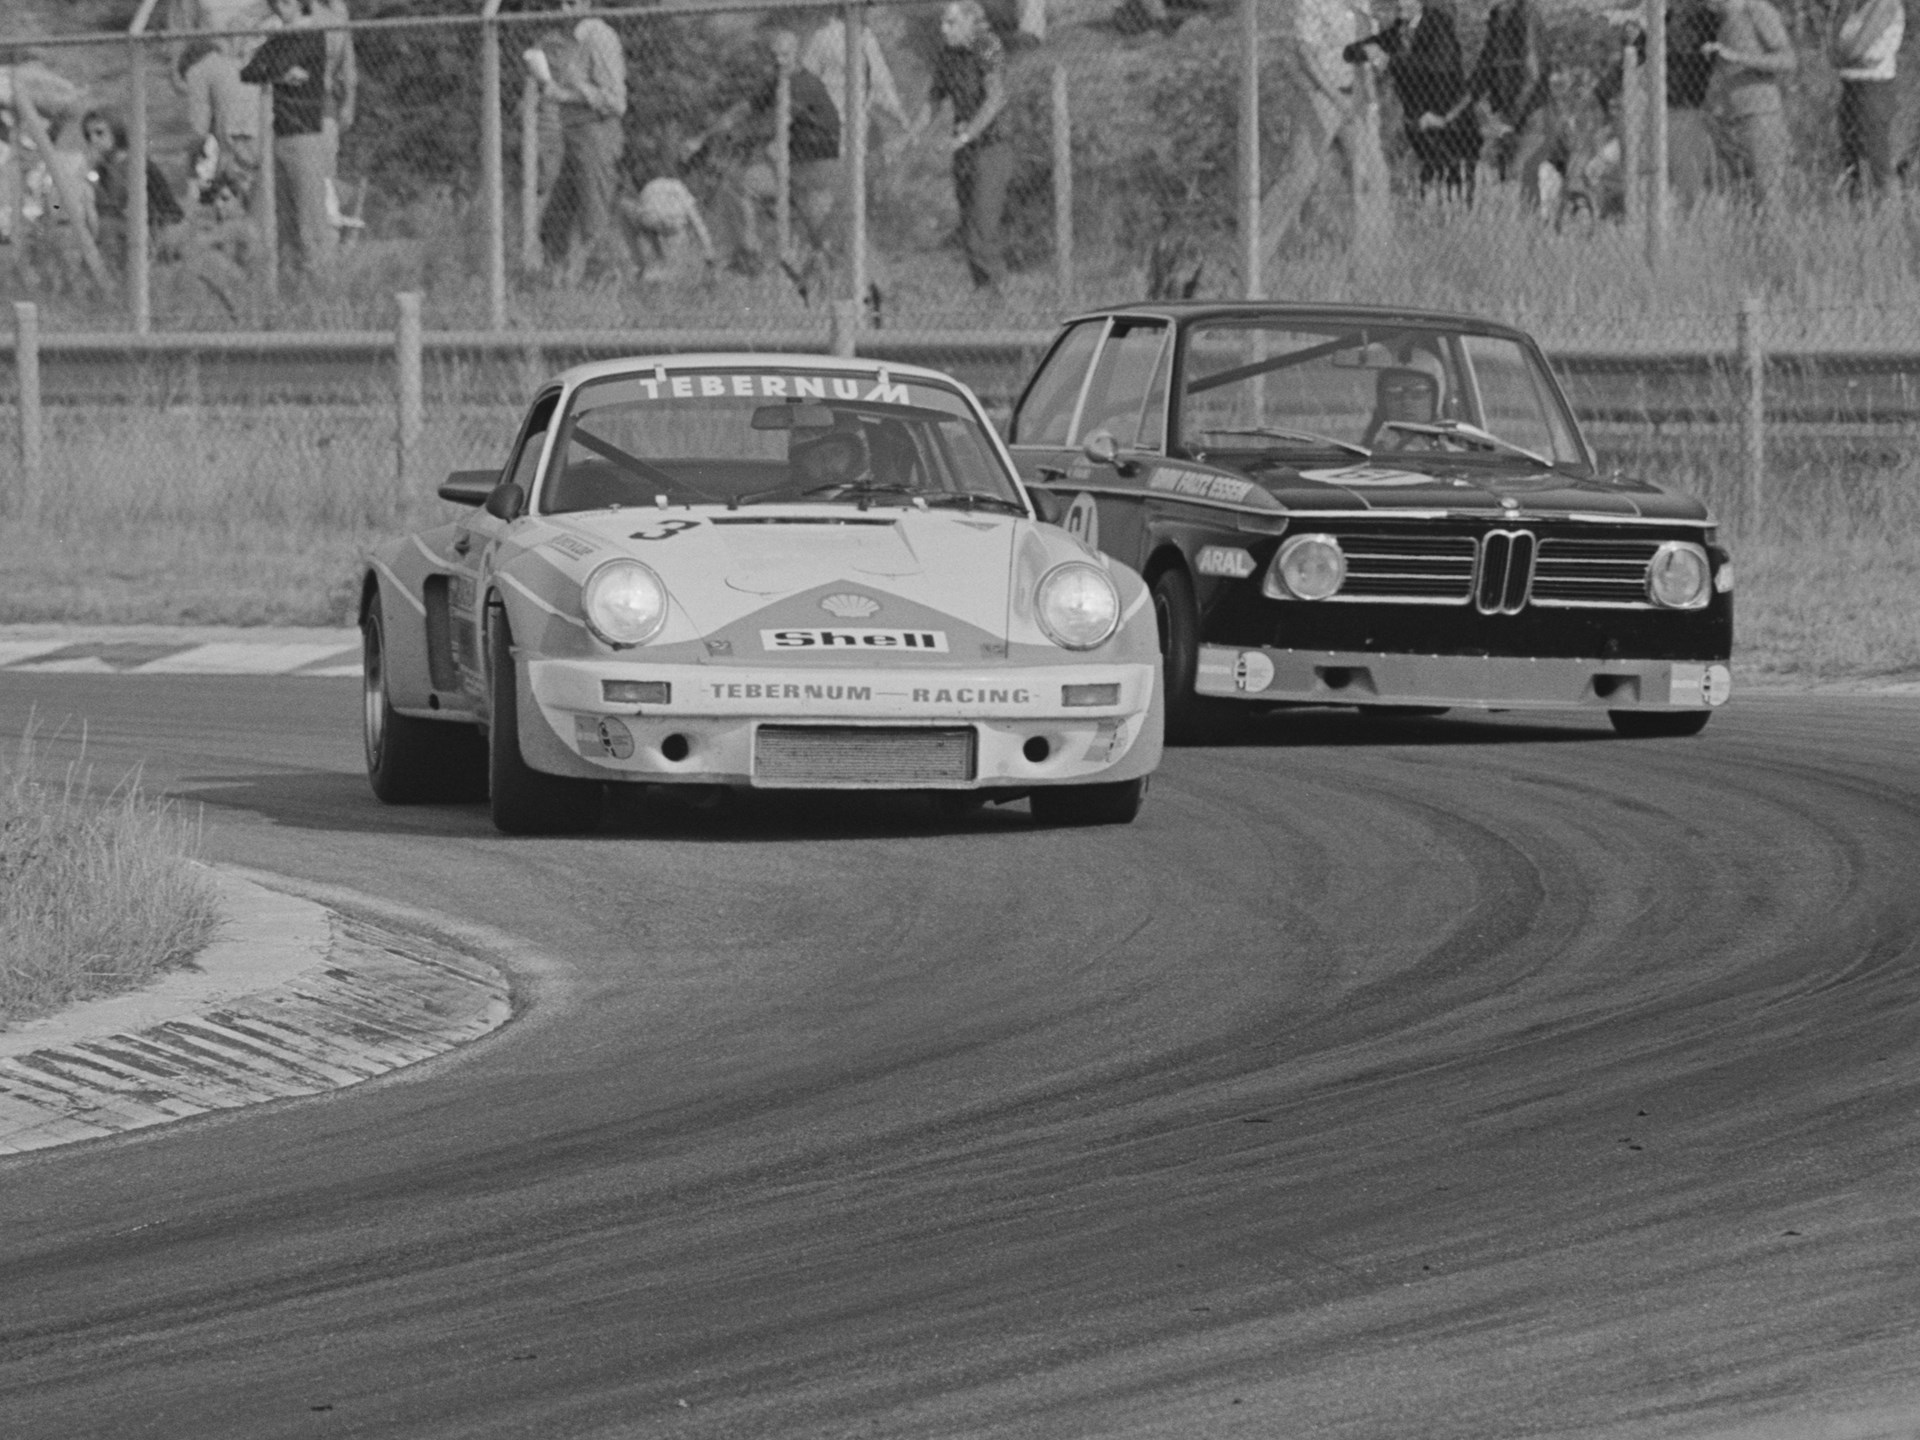 The RSR at speed at Zandvoort in 1975.